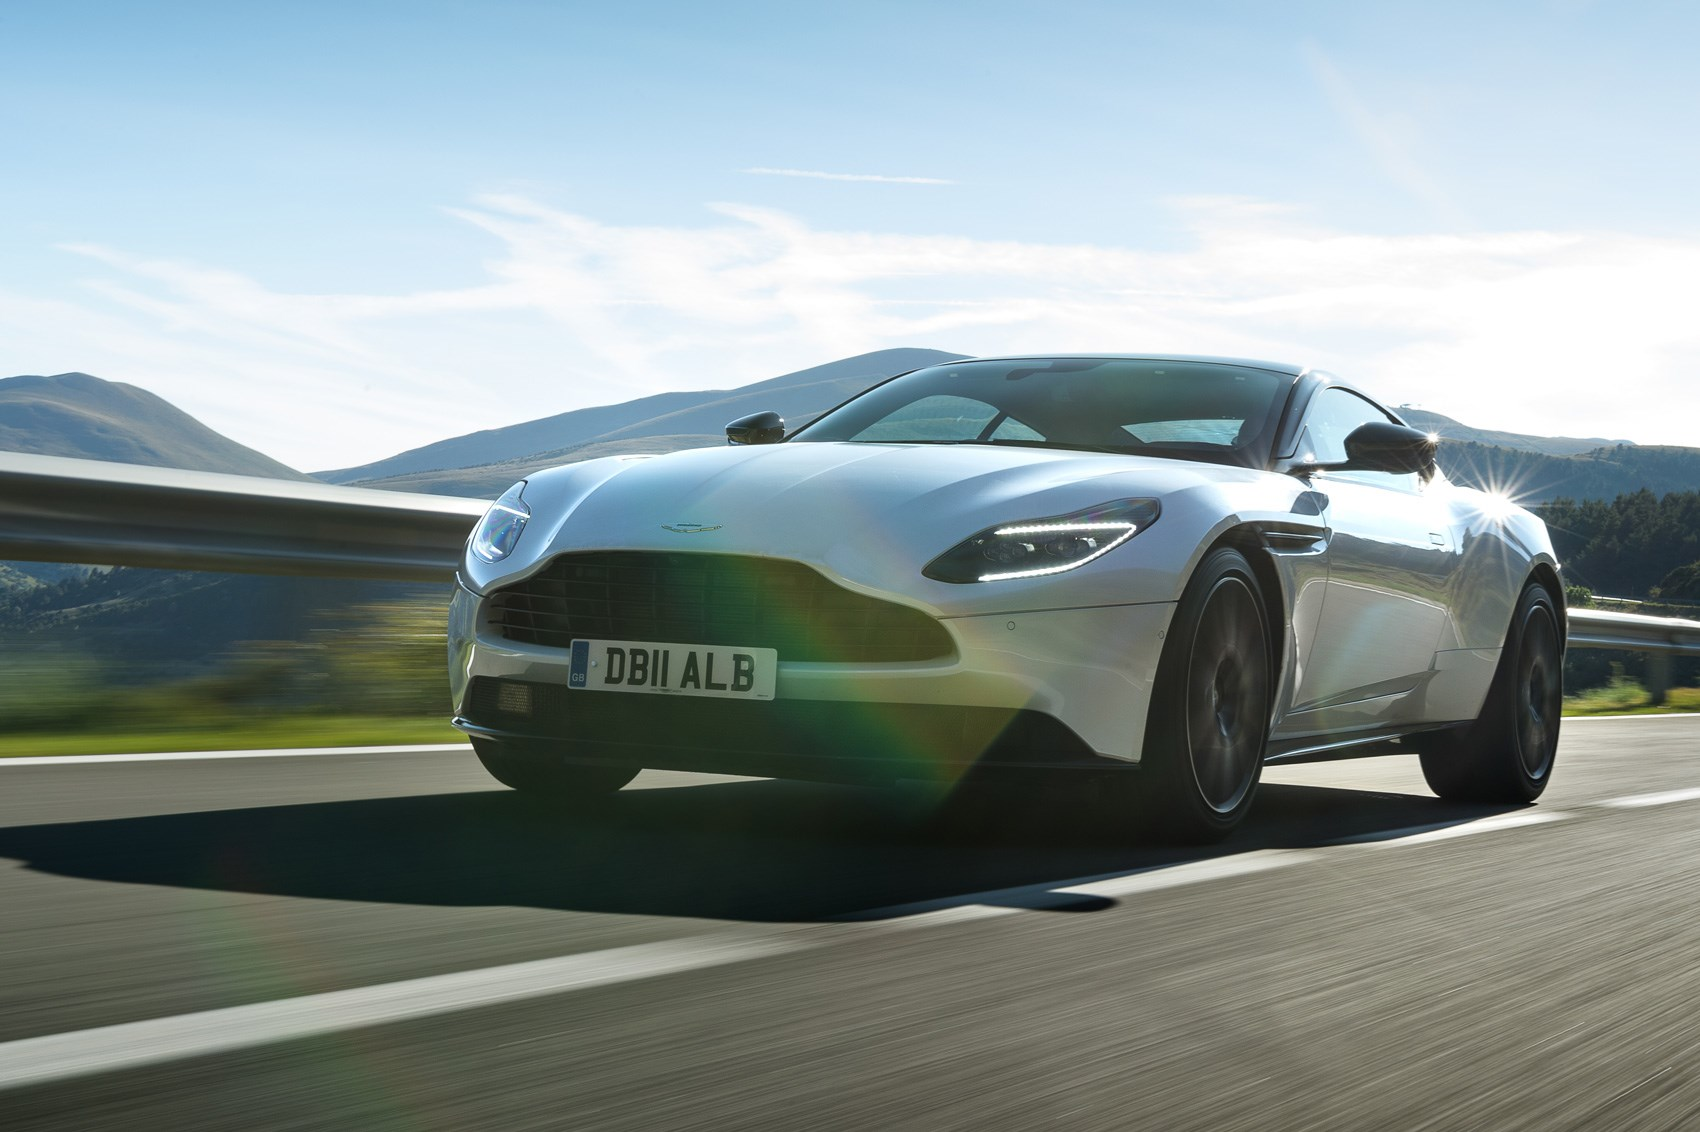 Car Reviews Independent Road Tests CAR Magazine - 2006 aston martin vanquish price